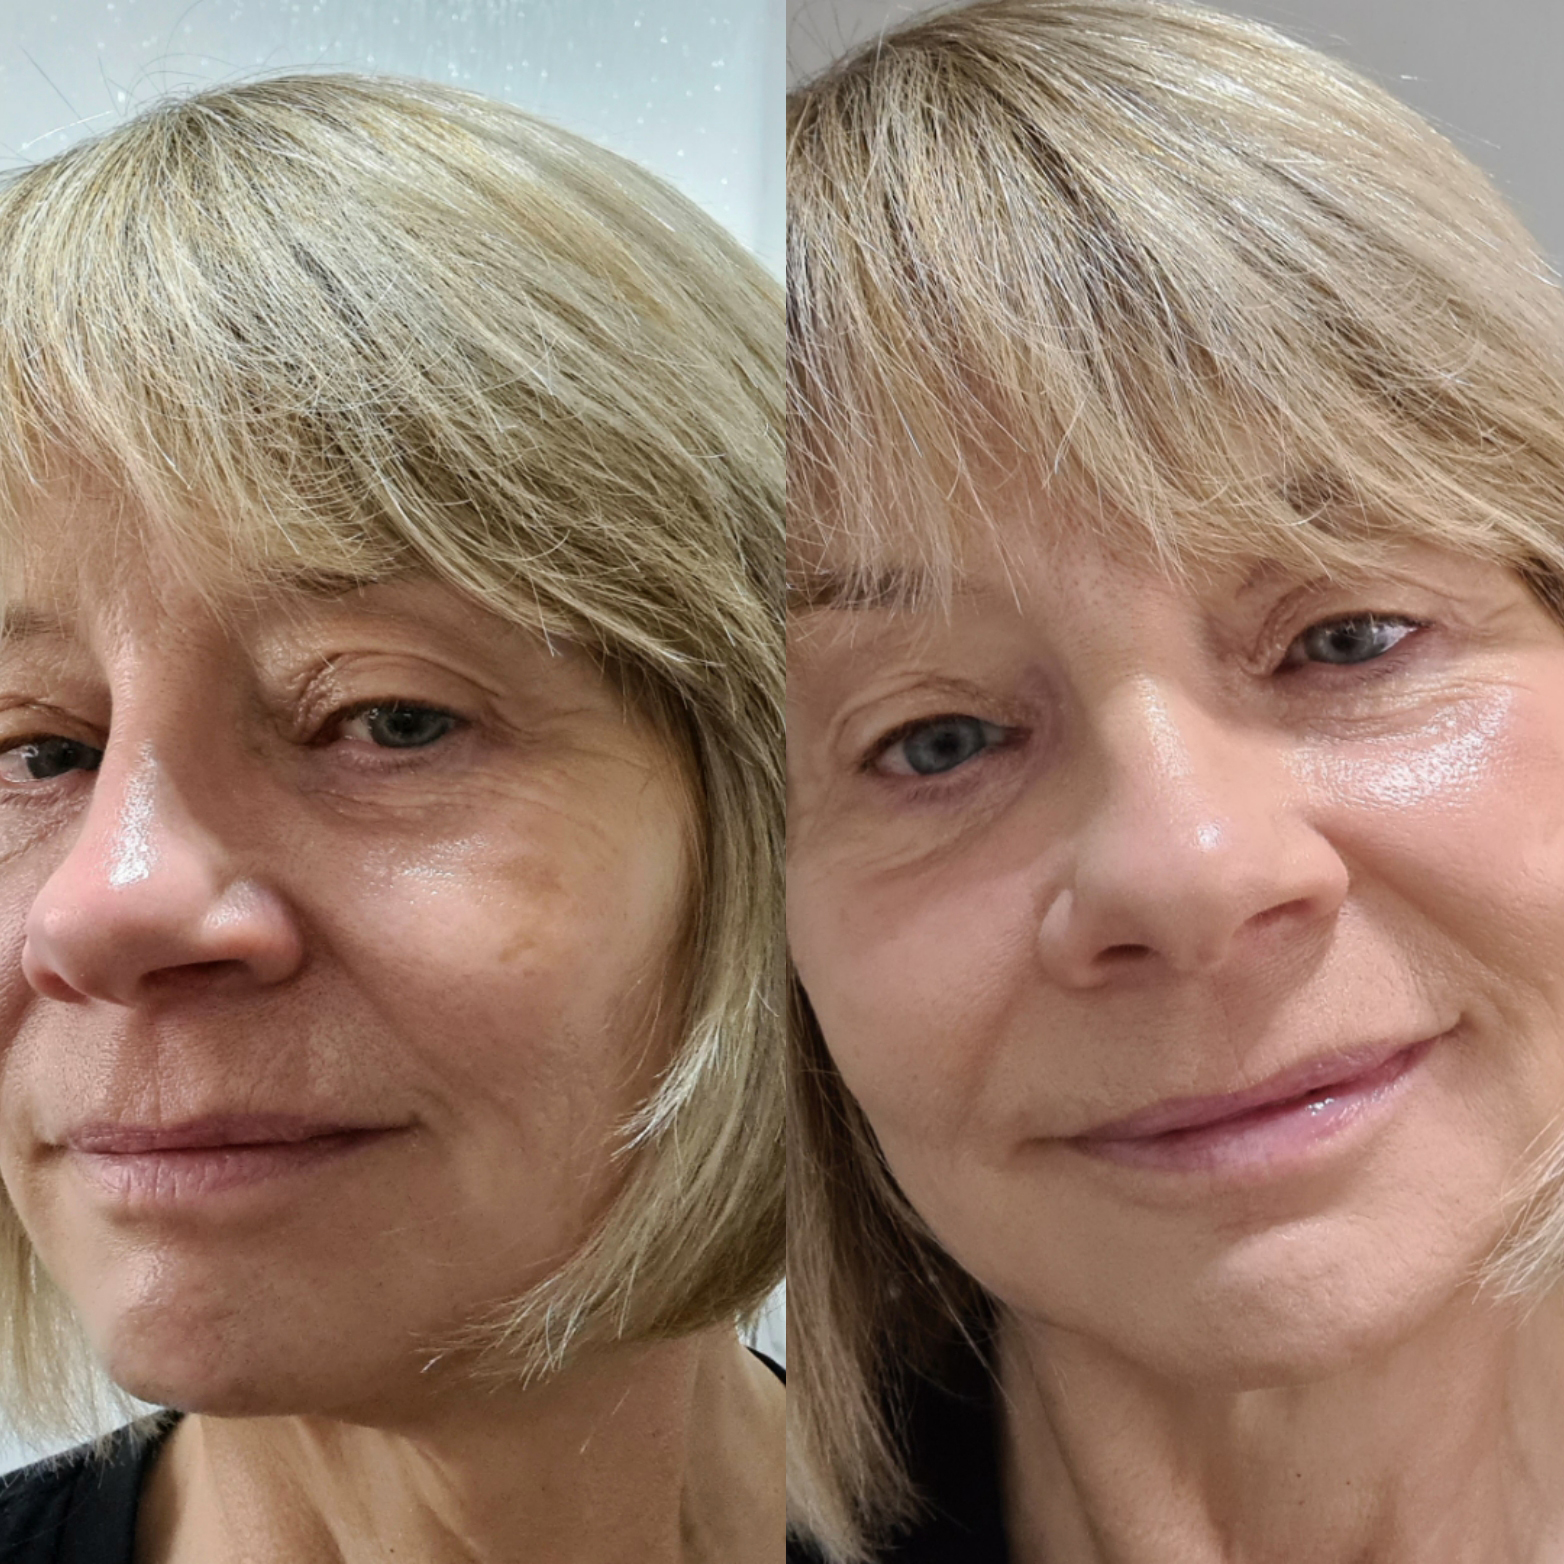 Before and after: using just three make-up products can make all the difference as over-50s style and beauty blogger Gail Hanlon, from Is This Mutton, demonstrates